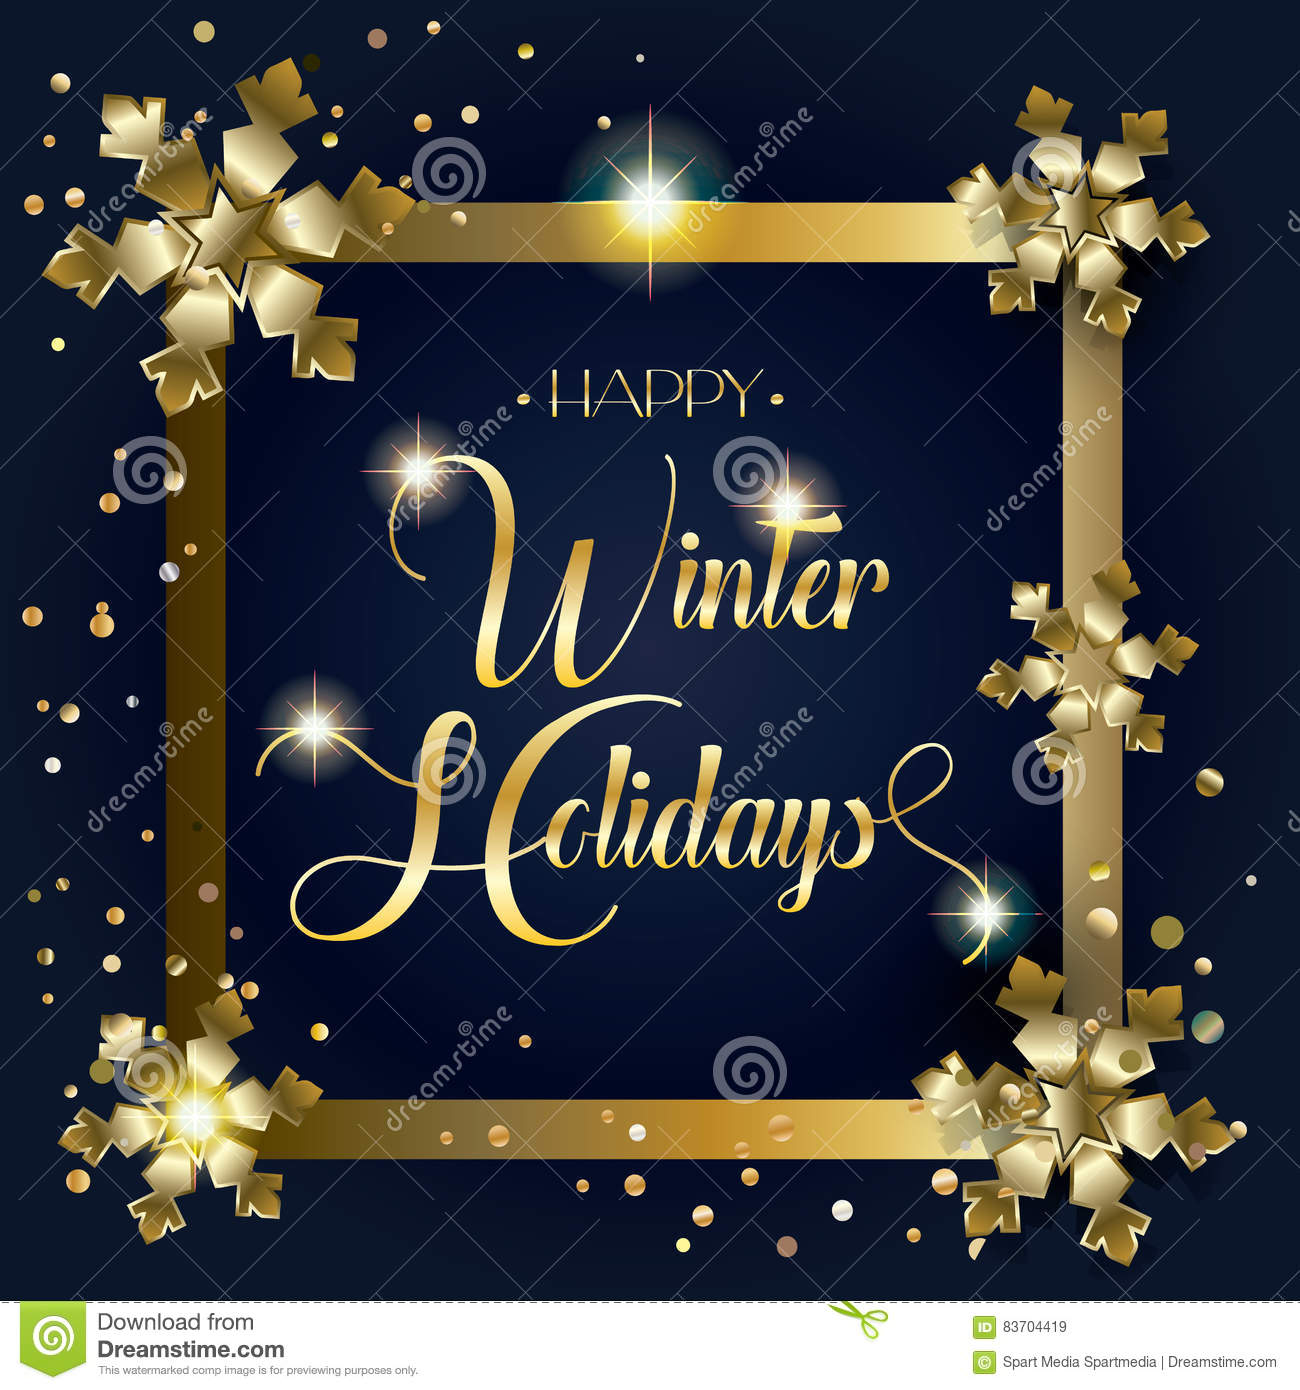 Download Happy Winter Holidays stock vector. Illustration of holiday - 83704419